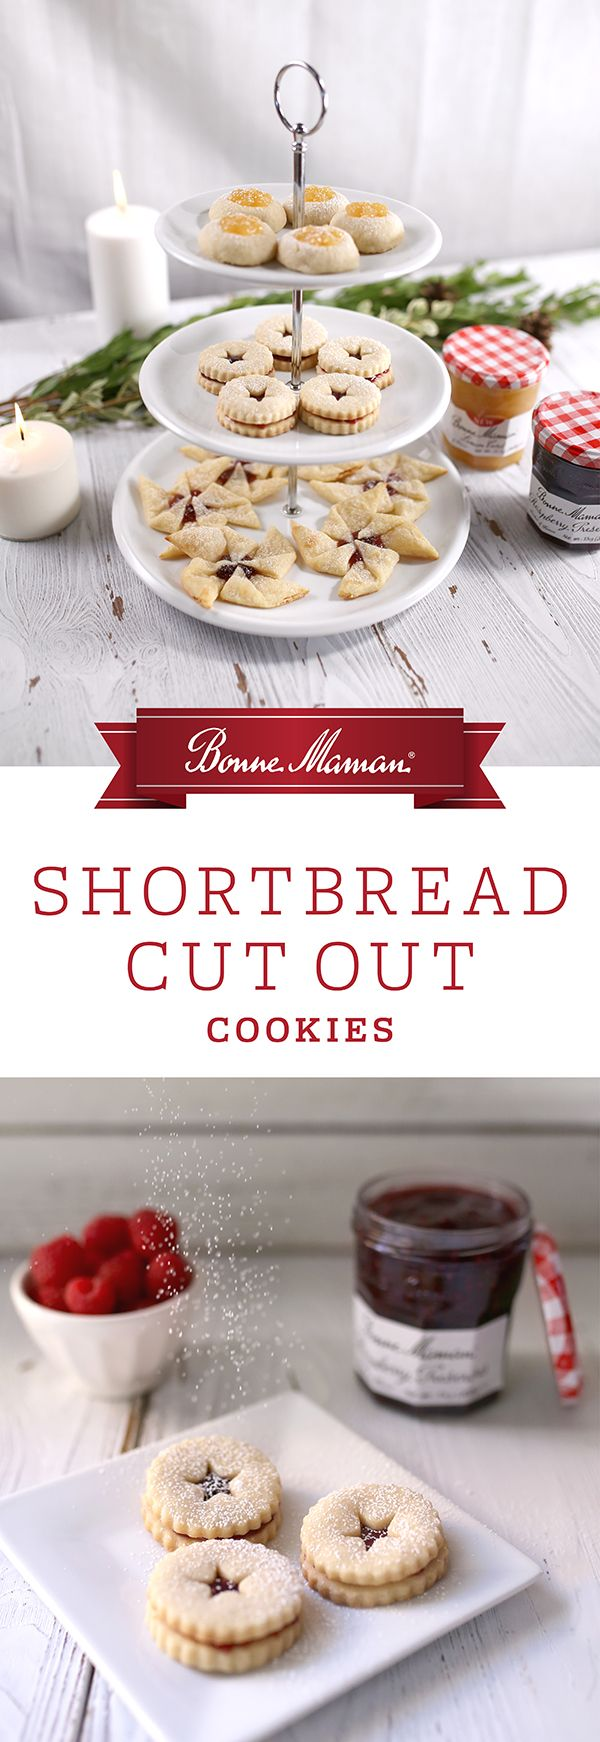 Shortbread Cut Out Cookies- Inspired by the traditional Austrian Linzer Cookie but without the nuts, these cookies are filled with a layer of our Bonne Maman Raspberry Preserves and dusted to perfection with confectioner's sugar. Put your cookie cutters to use this holiday season with this simple, easy to make recipe that�s fun for the whole family.